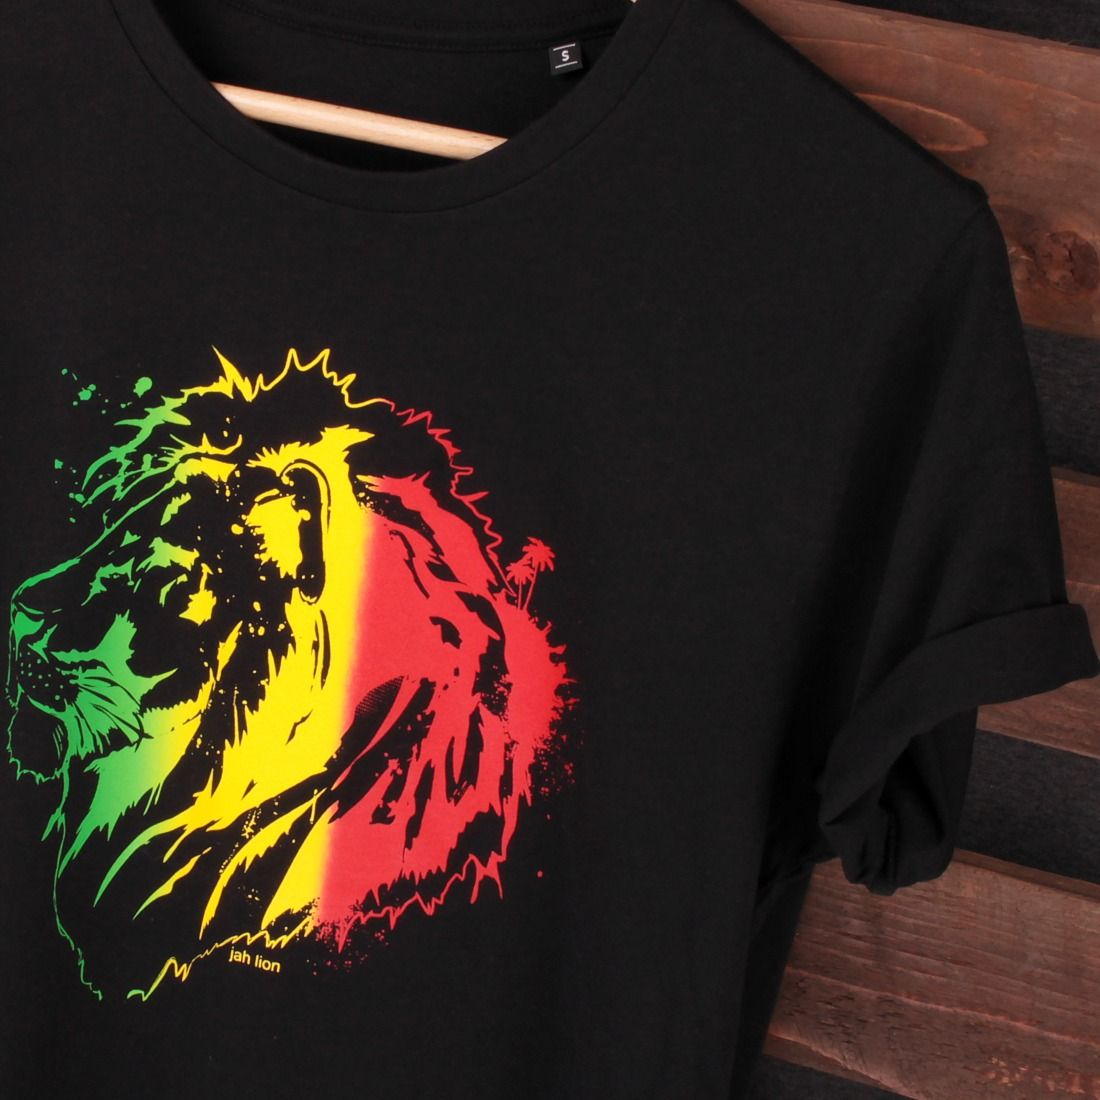 595af045 Men's » Rasta Reggae T-shirts » Rasta Jah Lion t-shirt | Organic Cotton - Rasta  Reggae shop - NuffRespekt.com | Roots Reality Culture